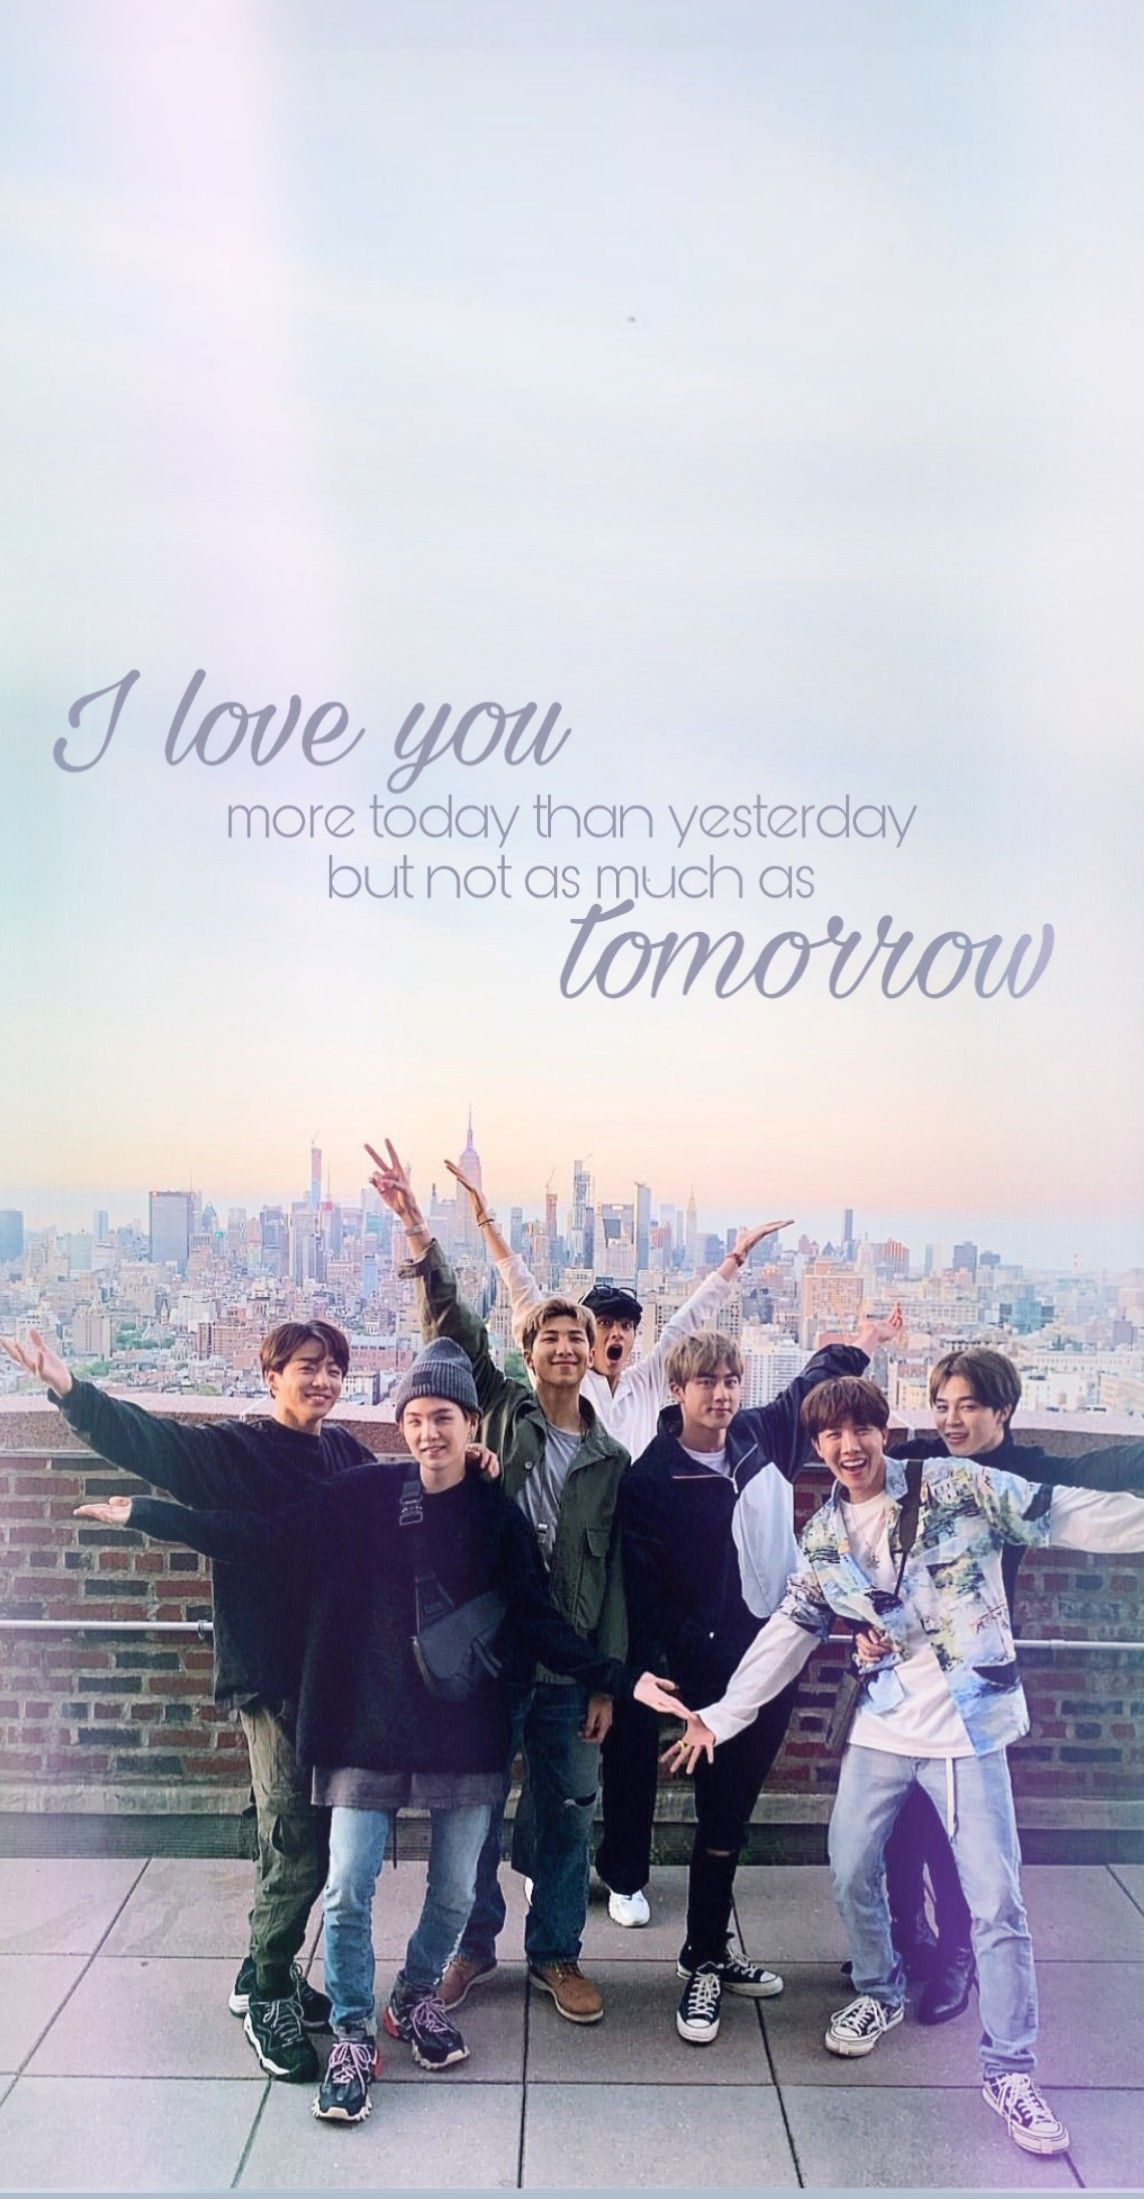 Bts Quotes In 2020 Bts Quotes Bts Aesthetic Wallpaper For Phone Bts Wallpaper Lyrics